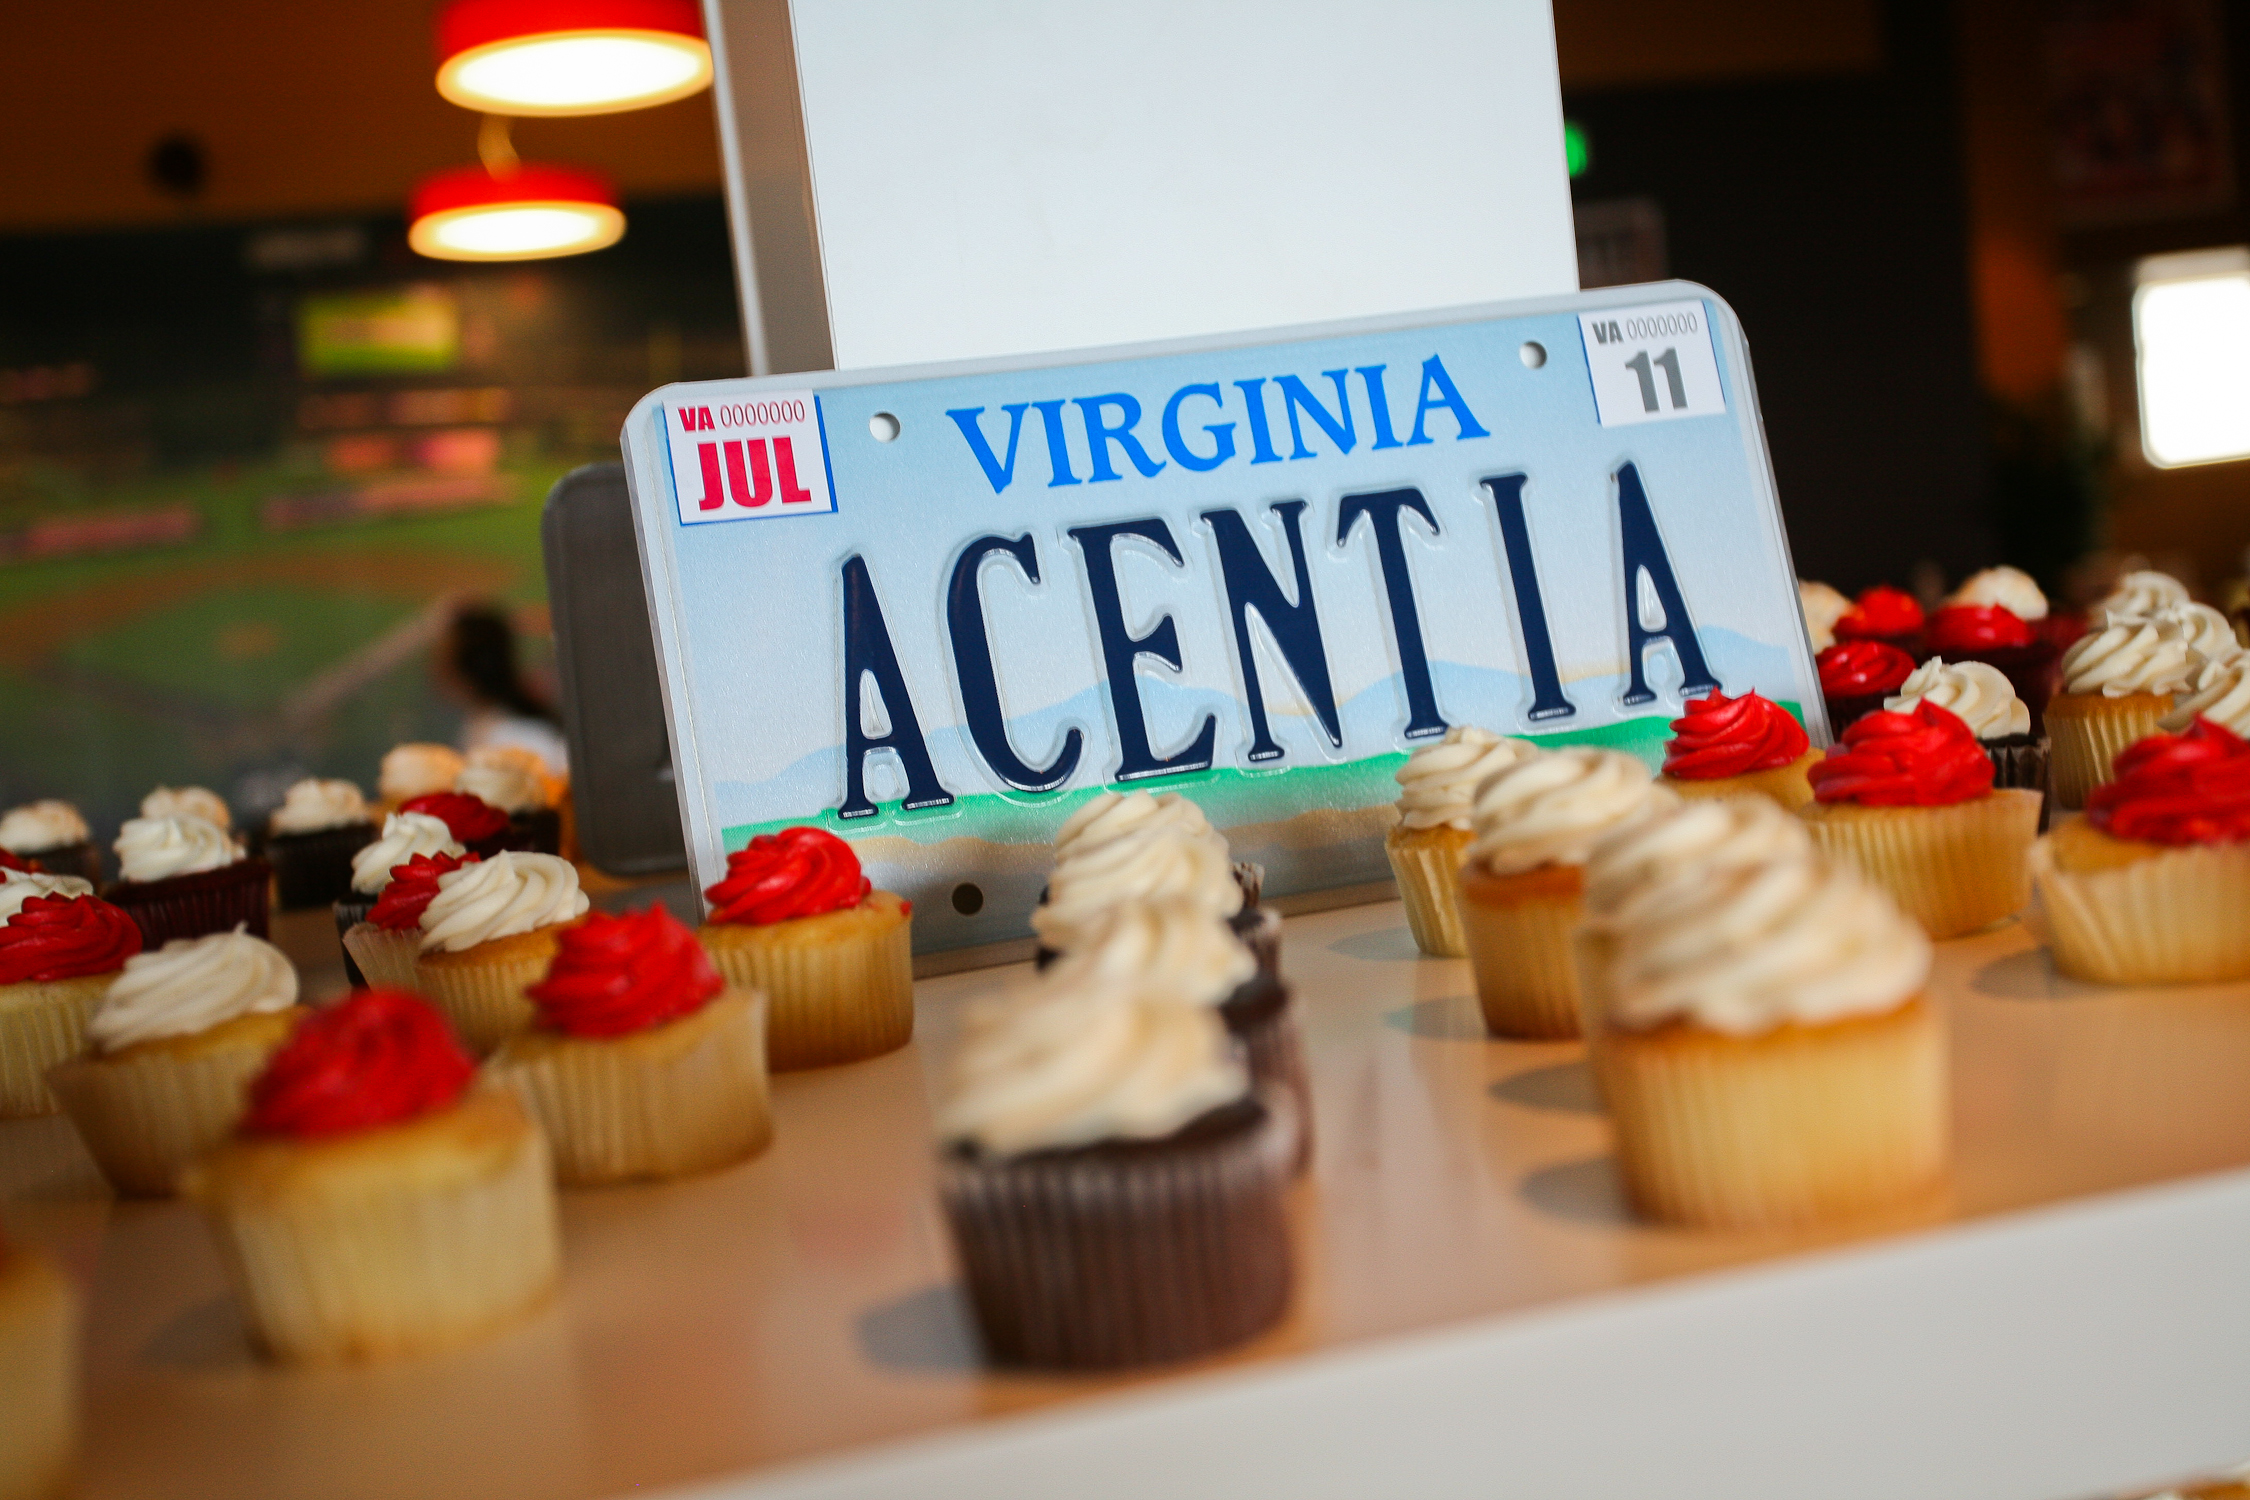 Acentia Brand Launch